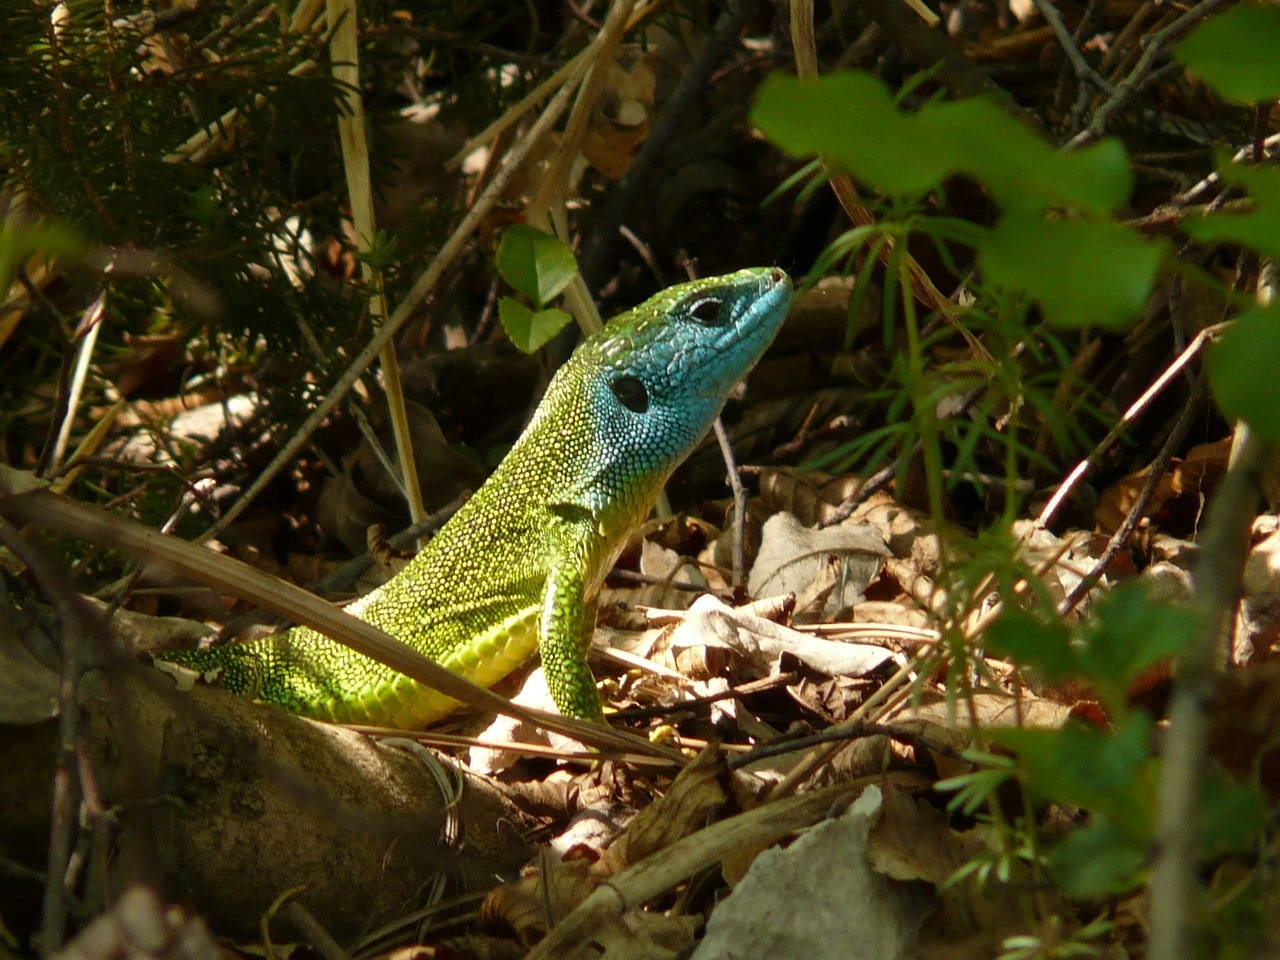 emerald lizard lizard reptile free photo